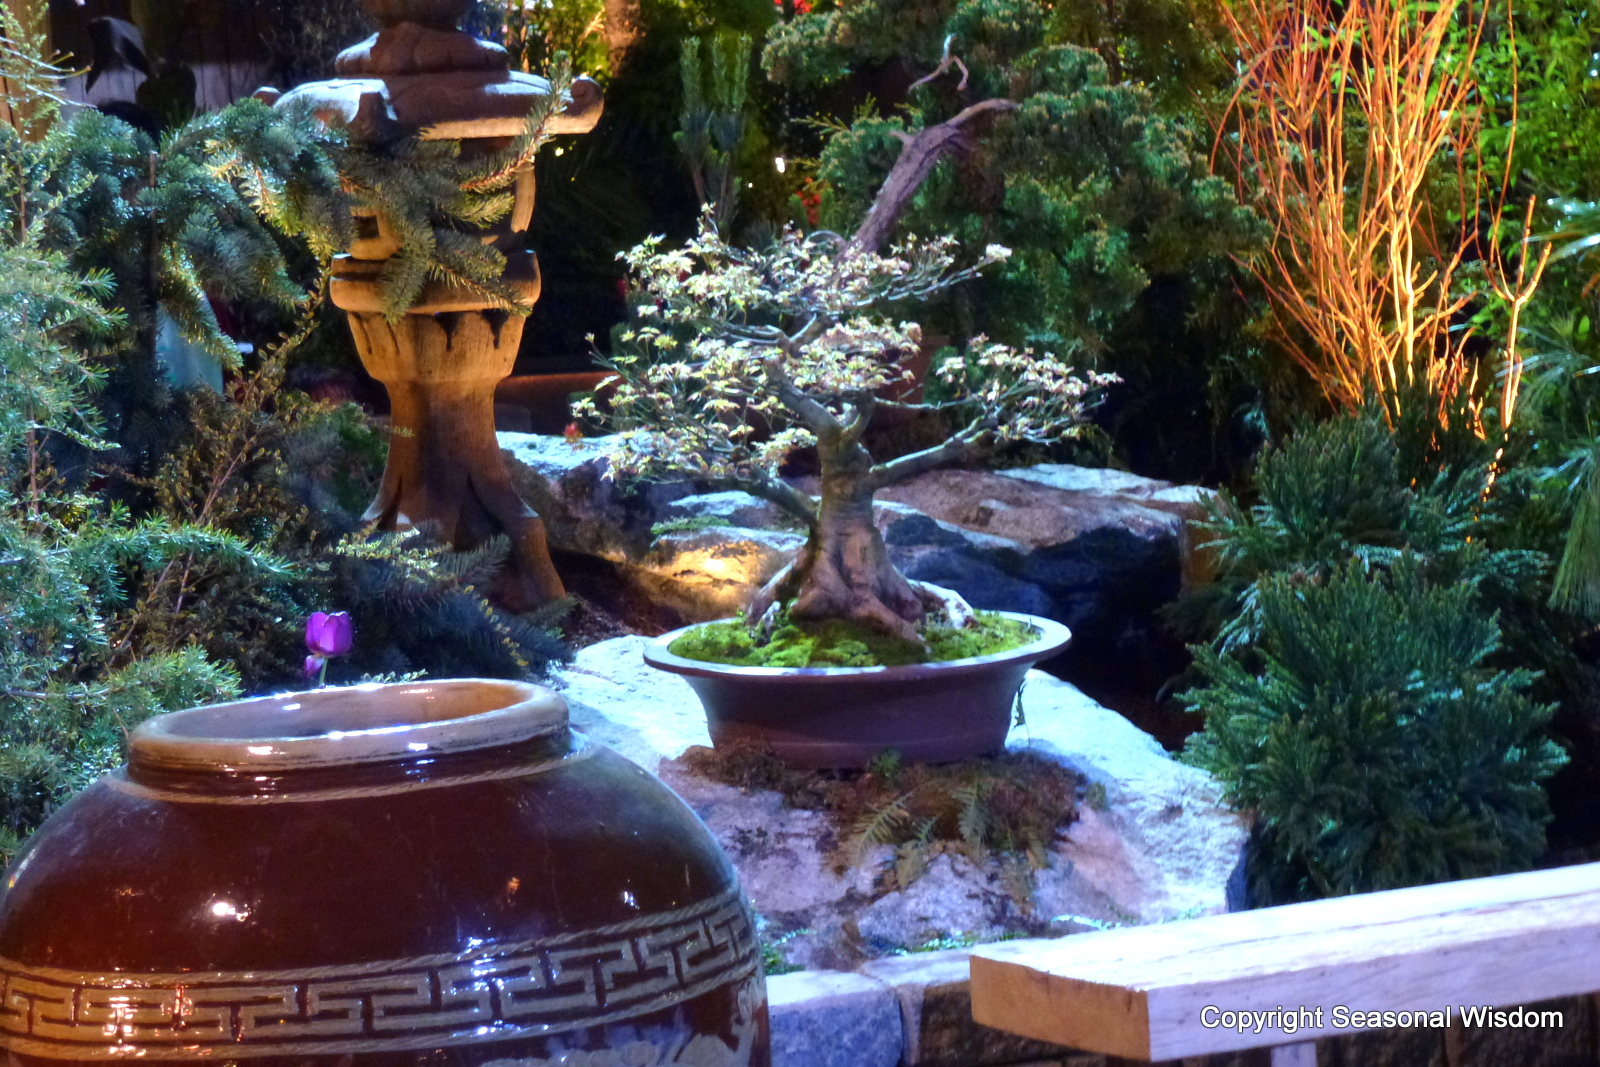 Naturalistic Garden Trends At 2013 Northwest Flower And